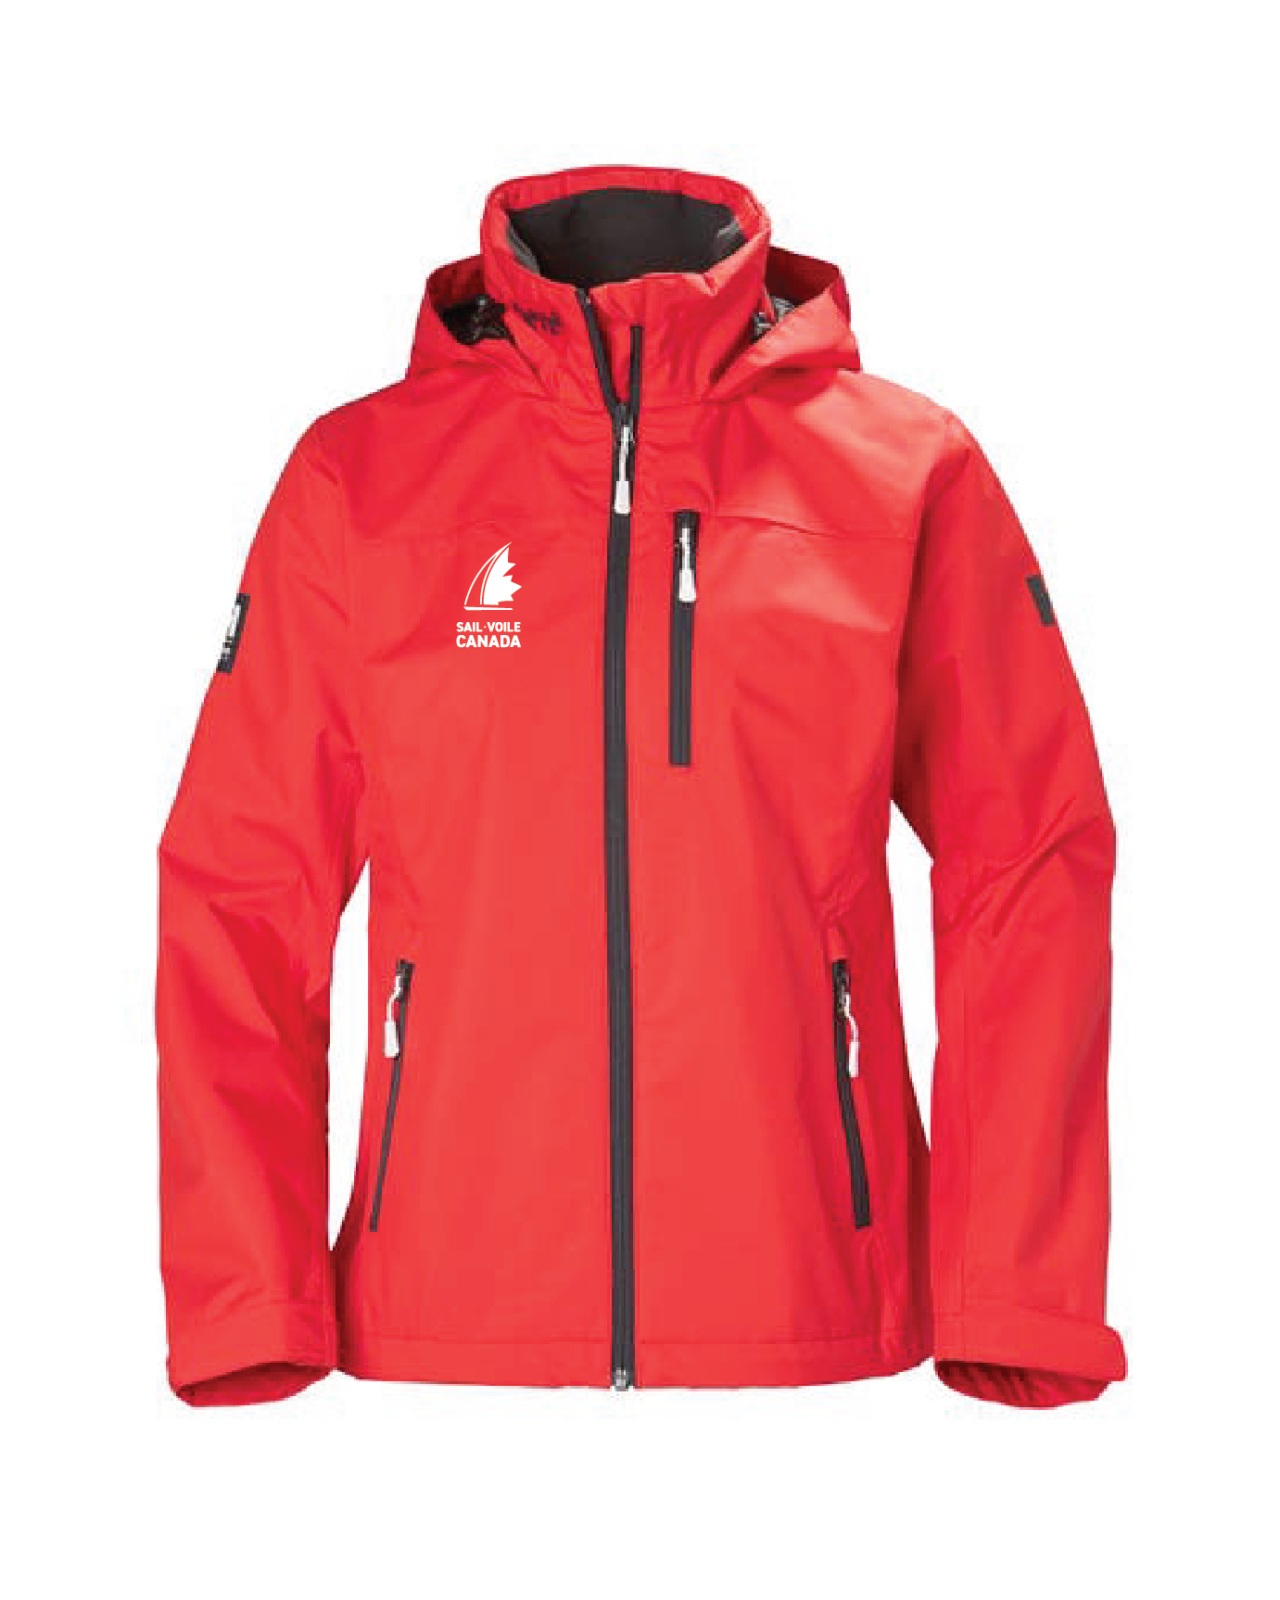 Sail Canada Hooded Crew Jacket by Helly Hansen - Women's